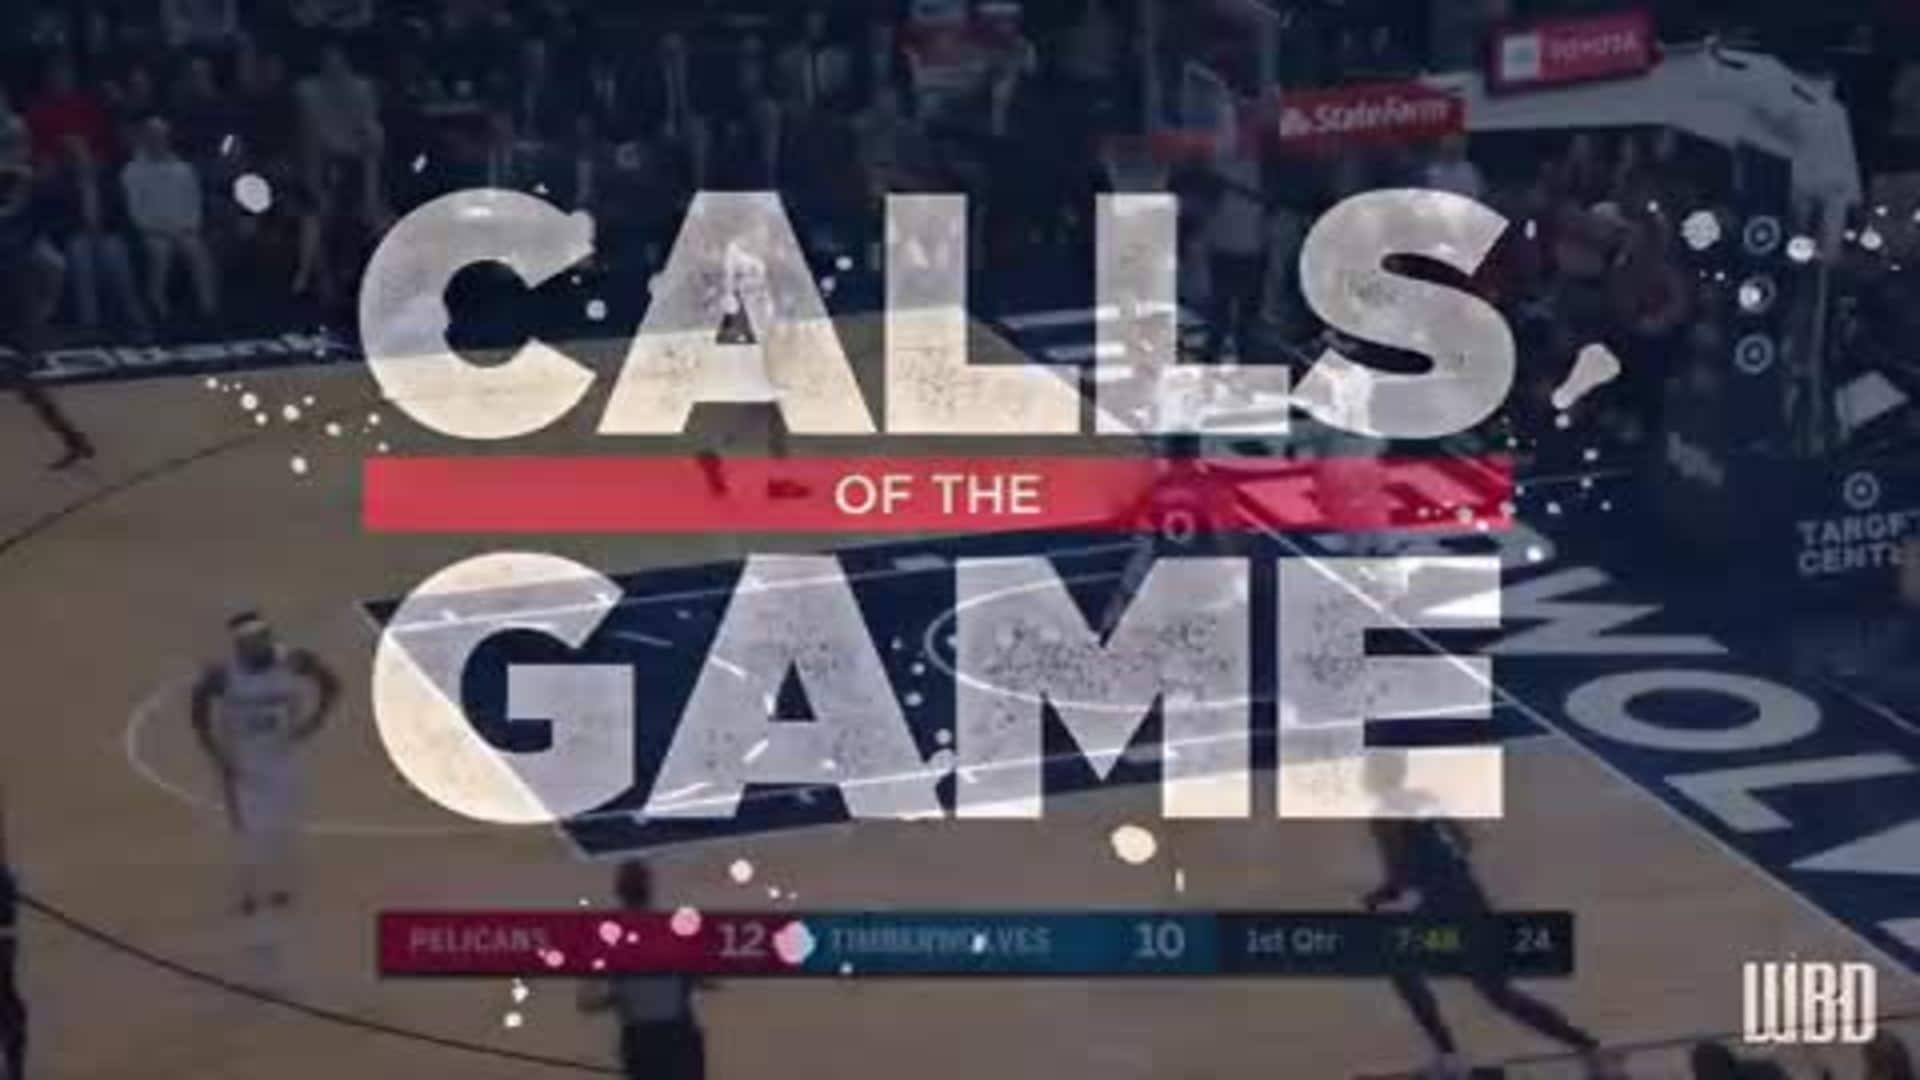 Calls of the Game: New Orleans Pelicans vs Minnesota Timberwolves - Game 64 - March 8, 2020